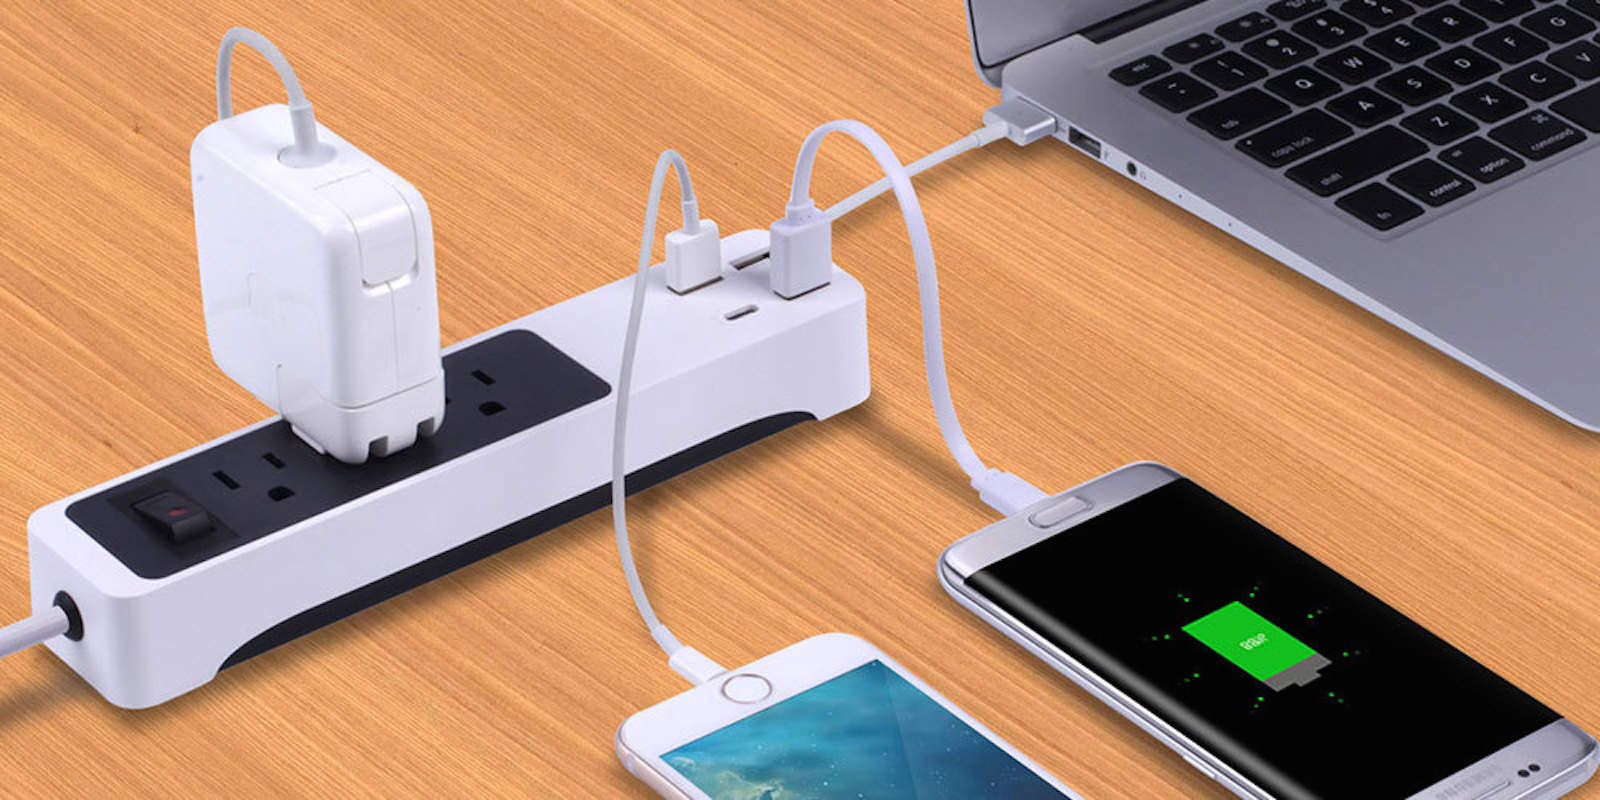 3 outlets and 4 USB ports make this travel-friendly power strip a comprehensive charging solution.